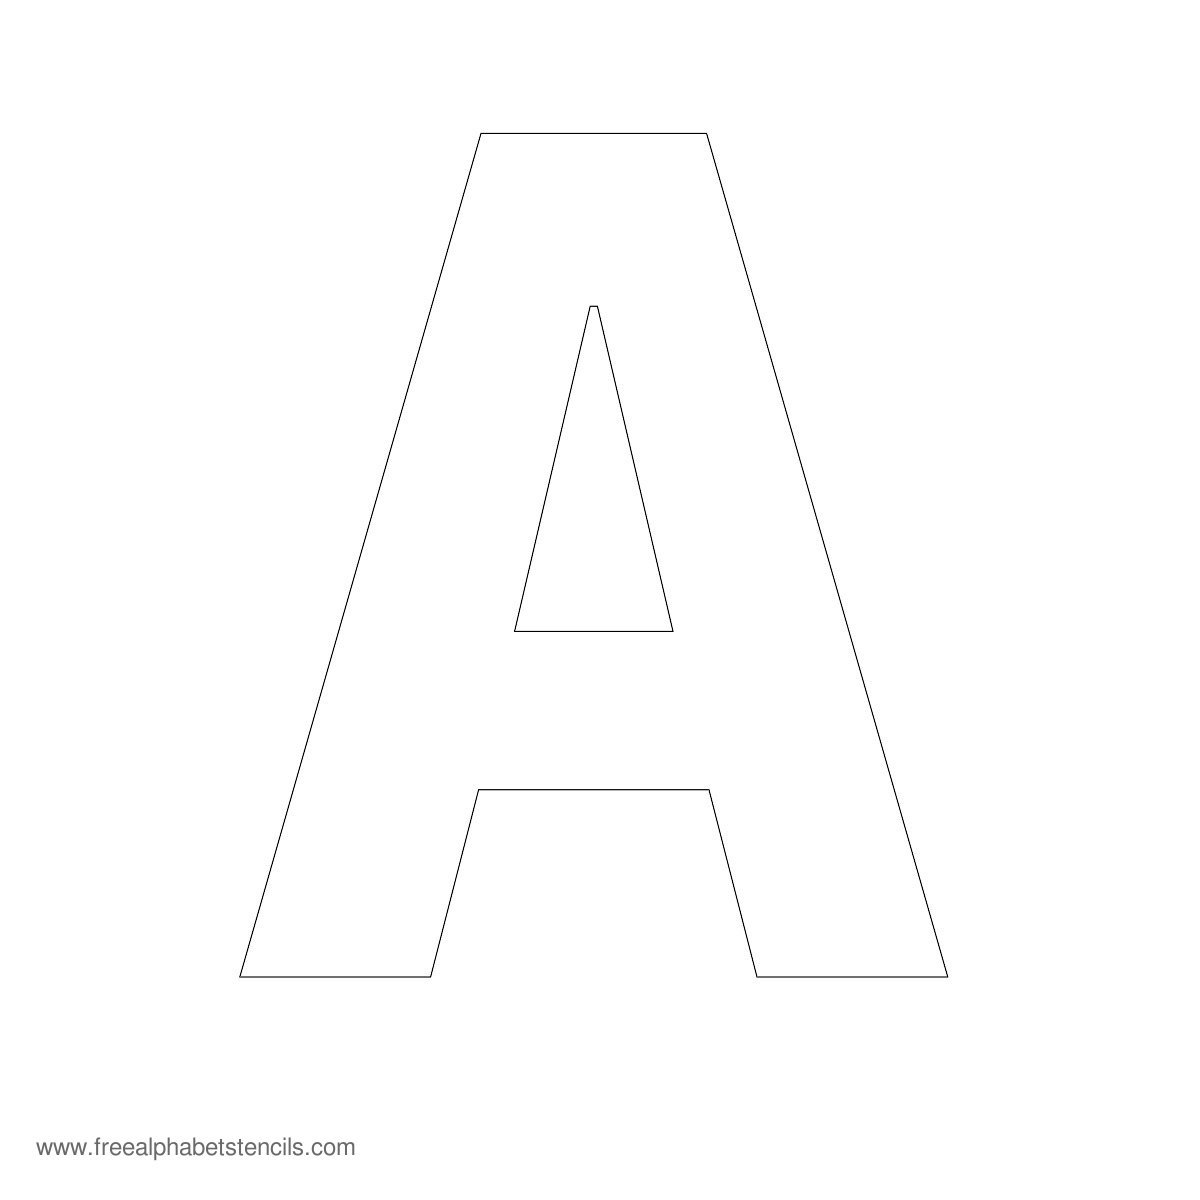 5 Images of Large Size Alphabet Letter Printable Stencil